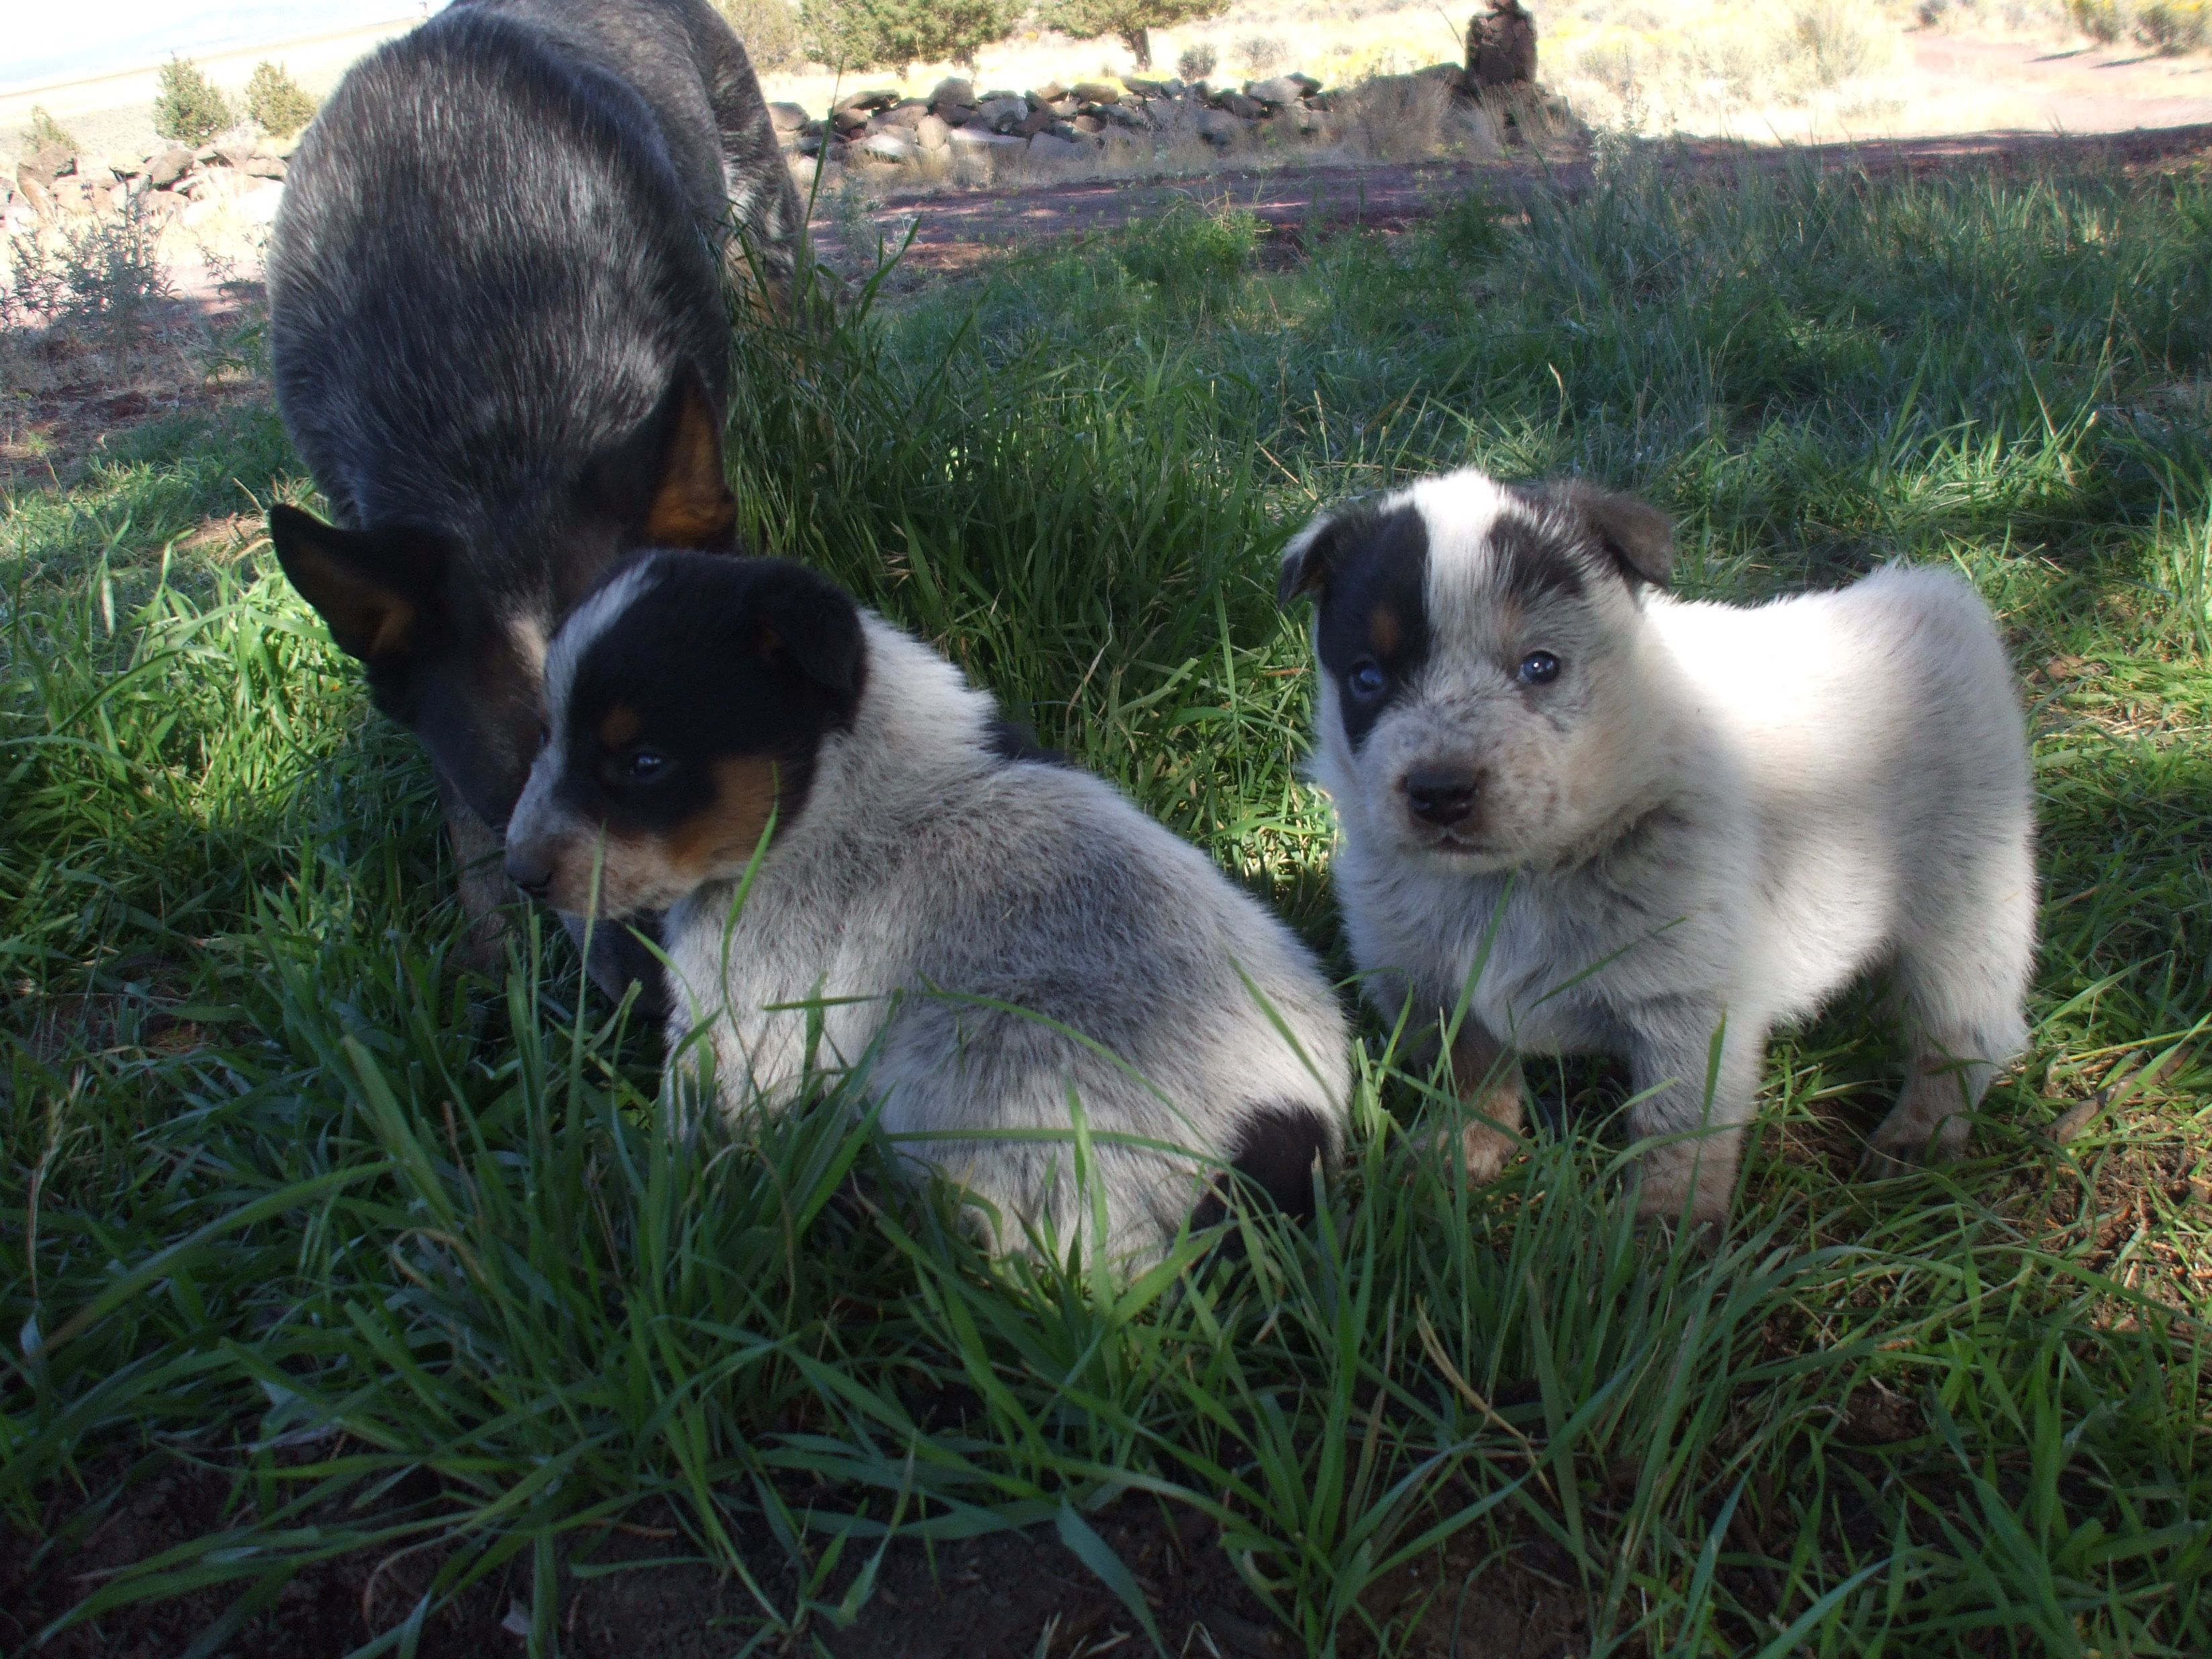 Our Current Puppies Cattle Dogs Rule Michael And Gabriel Thanks For Looking And Your Likes God Bless Luke 1 9 26 Cattle Dogs Rule Cattle Dog Herding Dogs